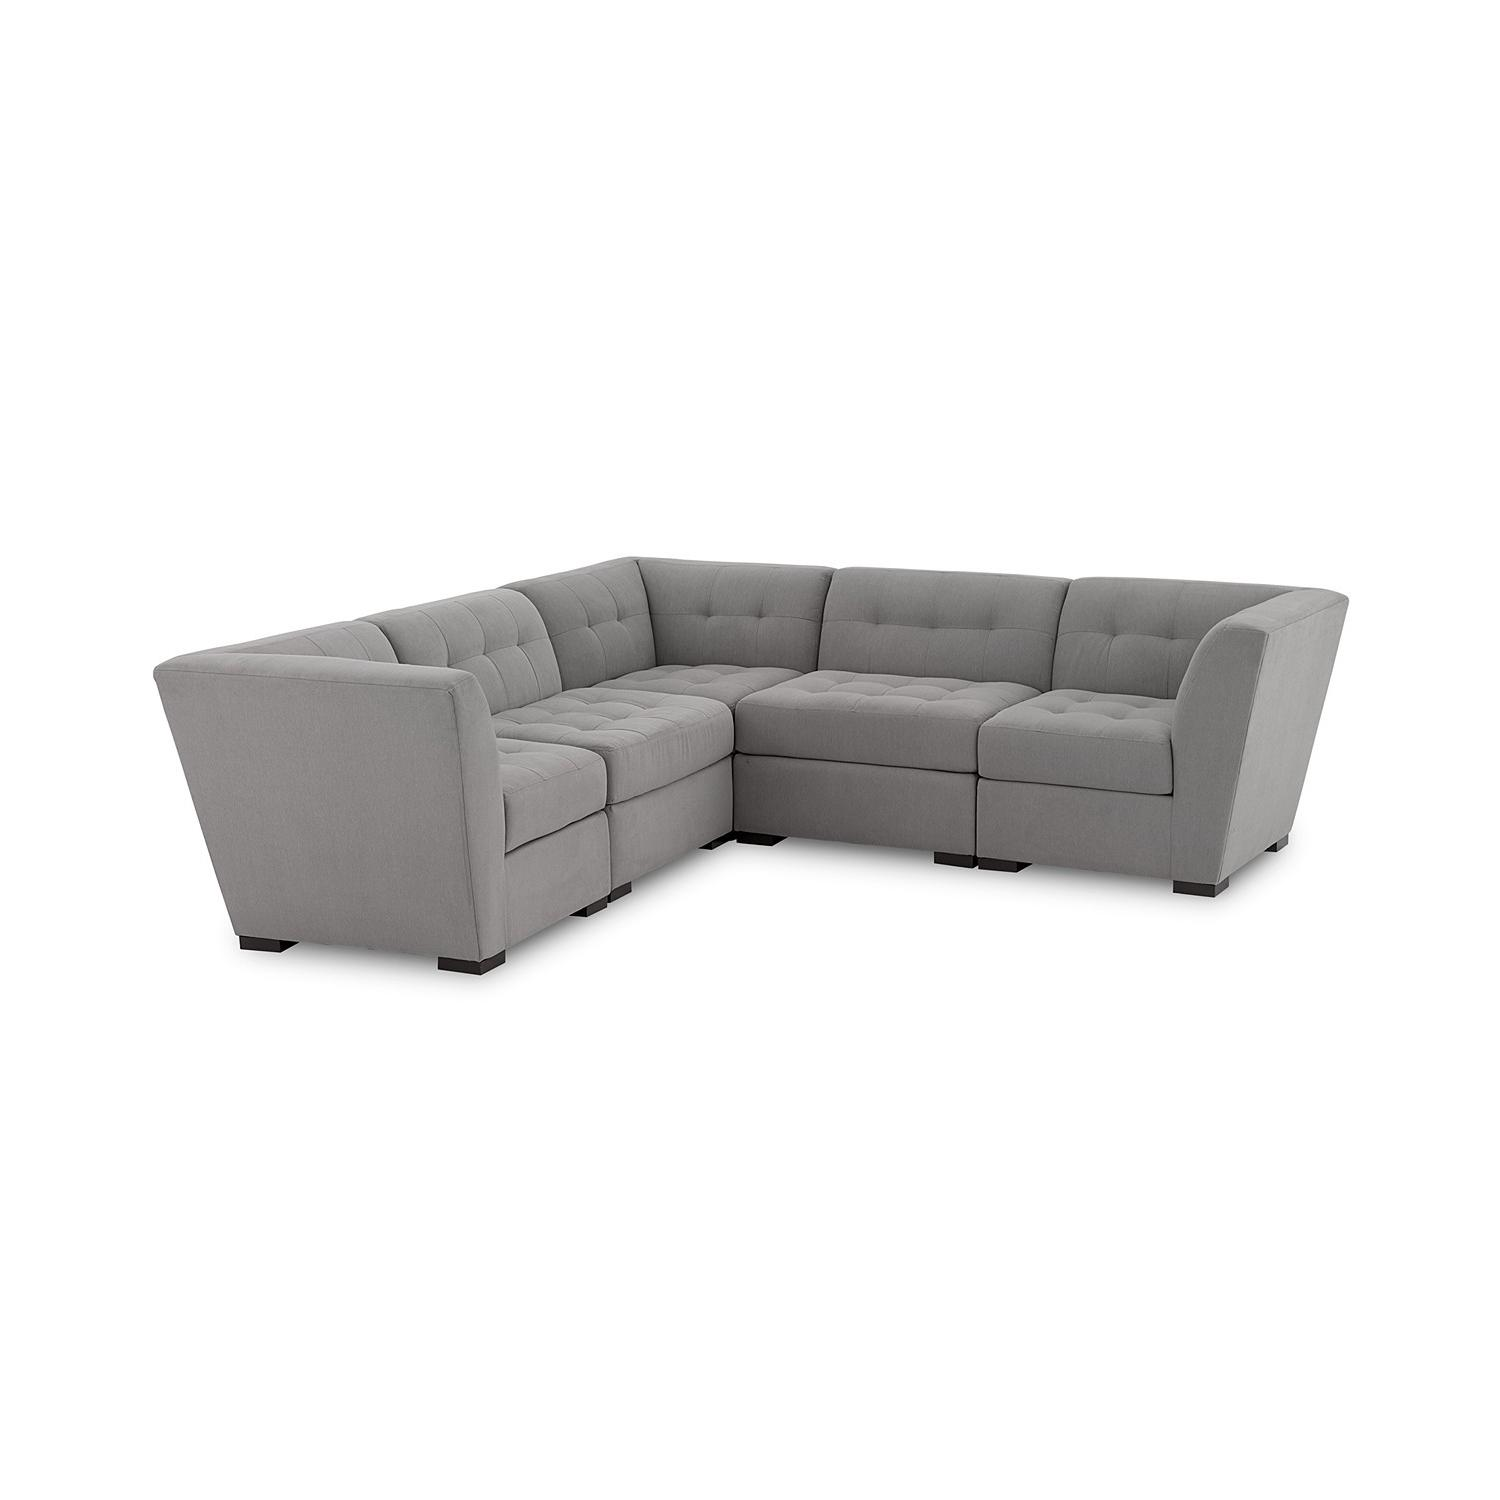 Macys Roxanne Couch - image-0